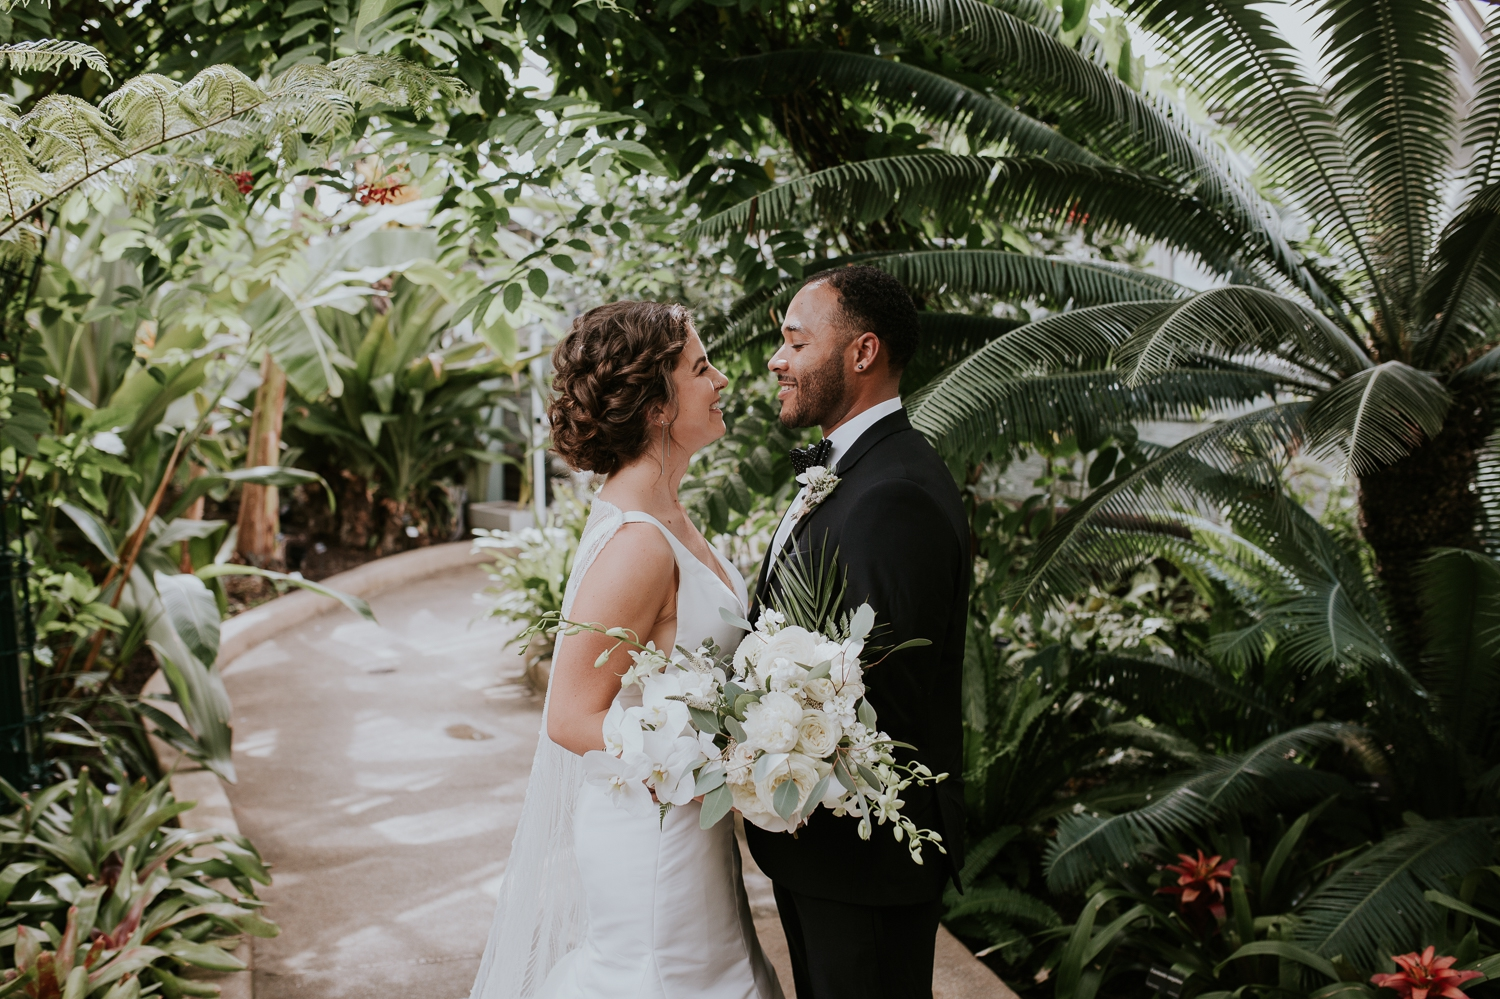 baltimore-maryland-rawlings-conservatory-wedding-portaits-photography 37.jpg